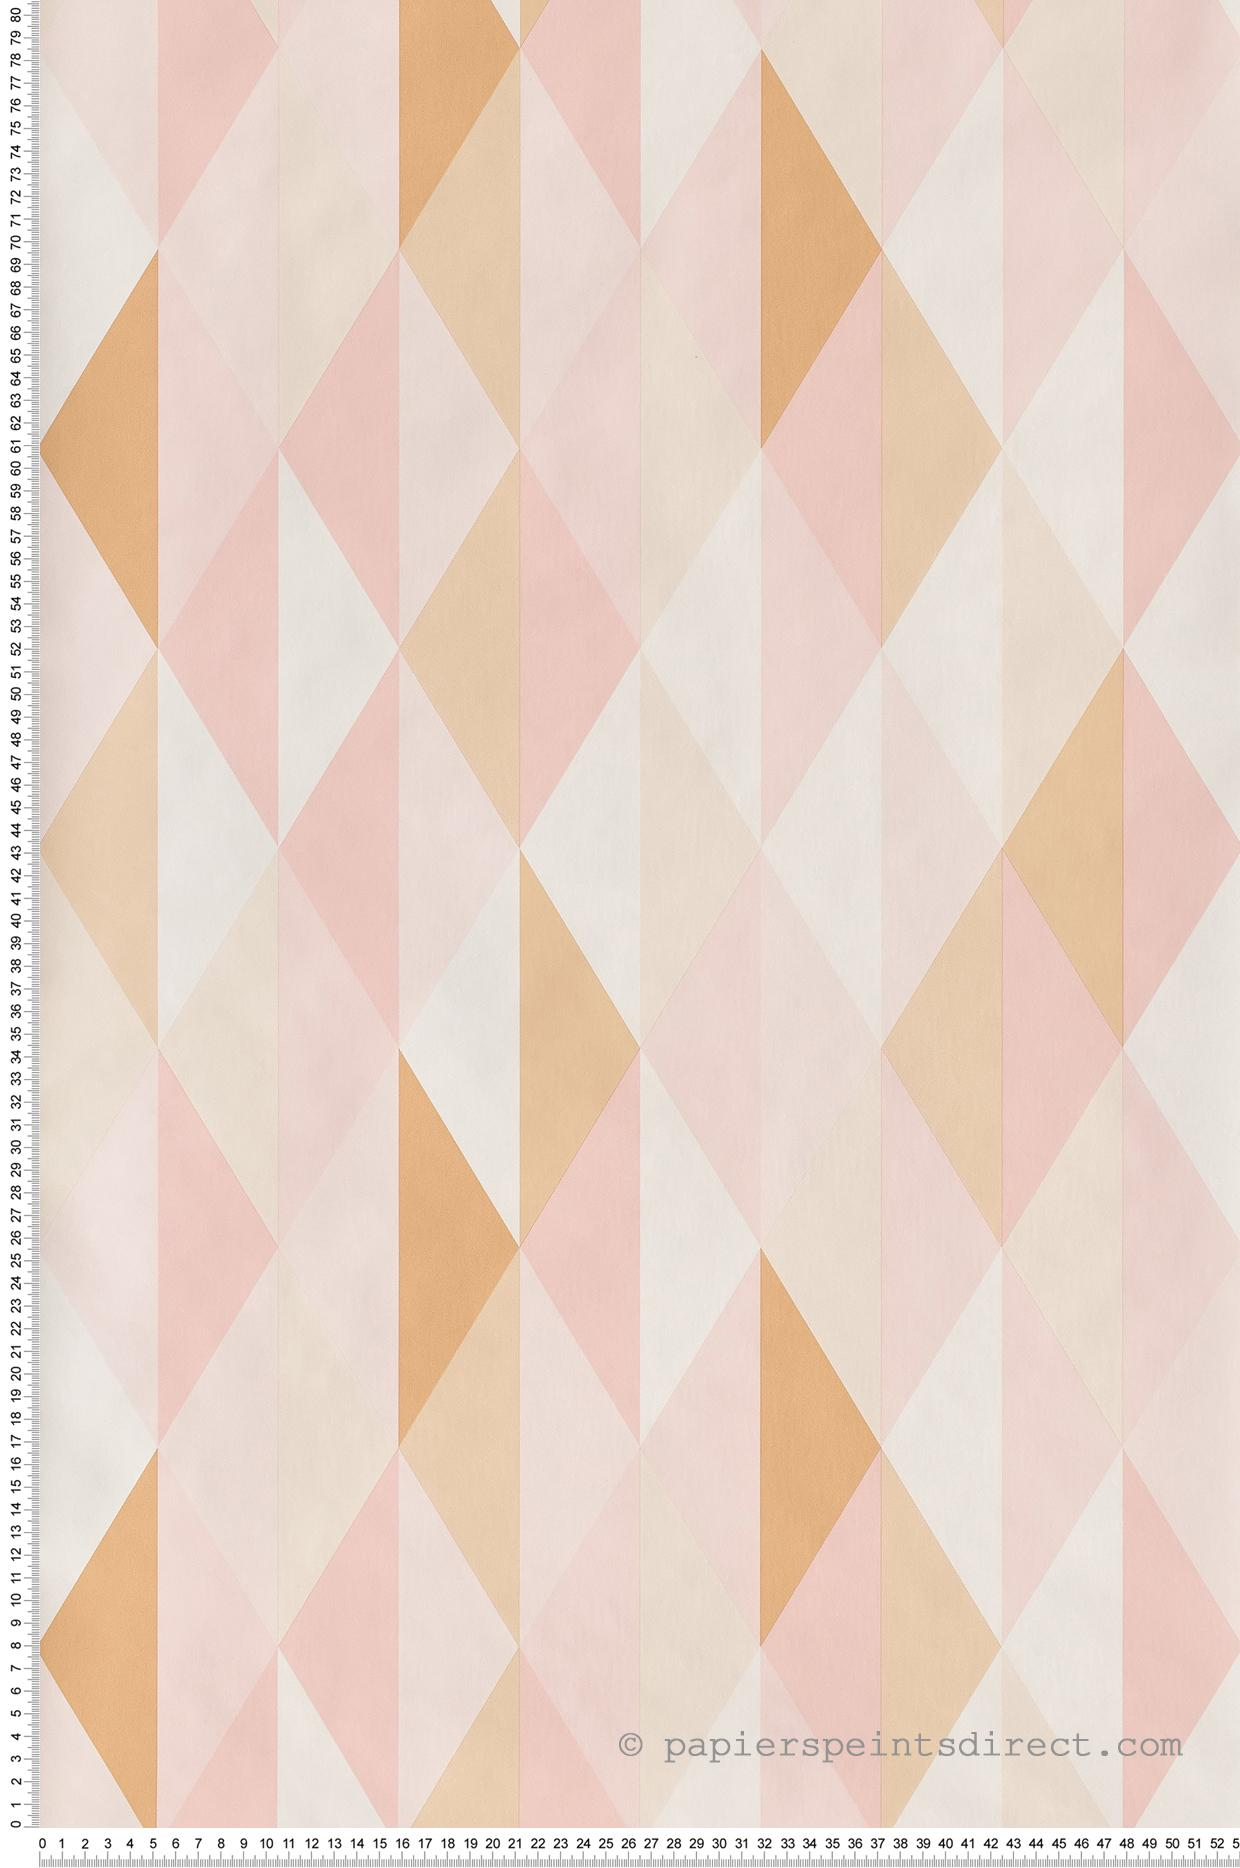 Papier peint Diamond orange rose - Spaces de Casélio | Réf. SPA100084239